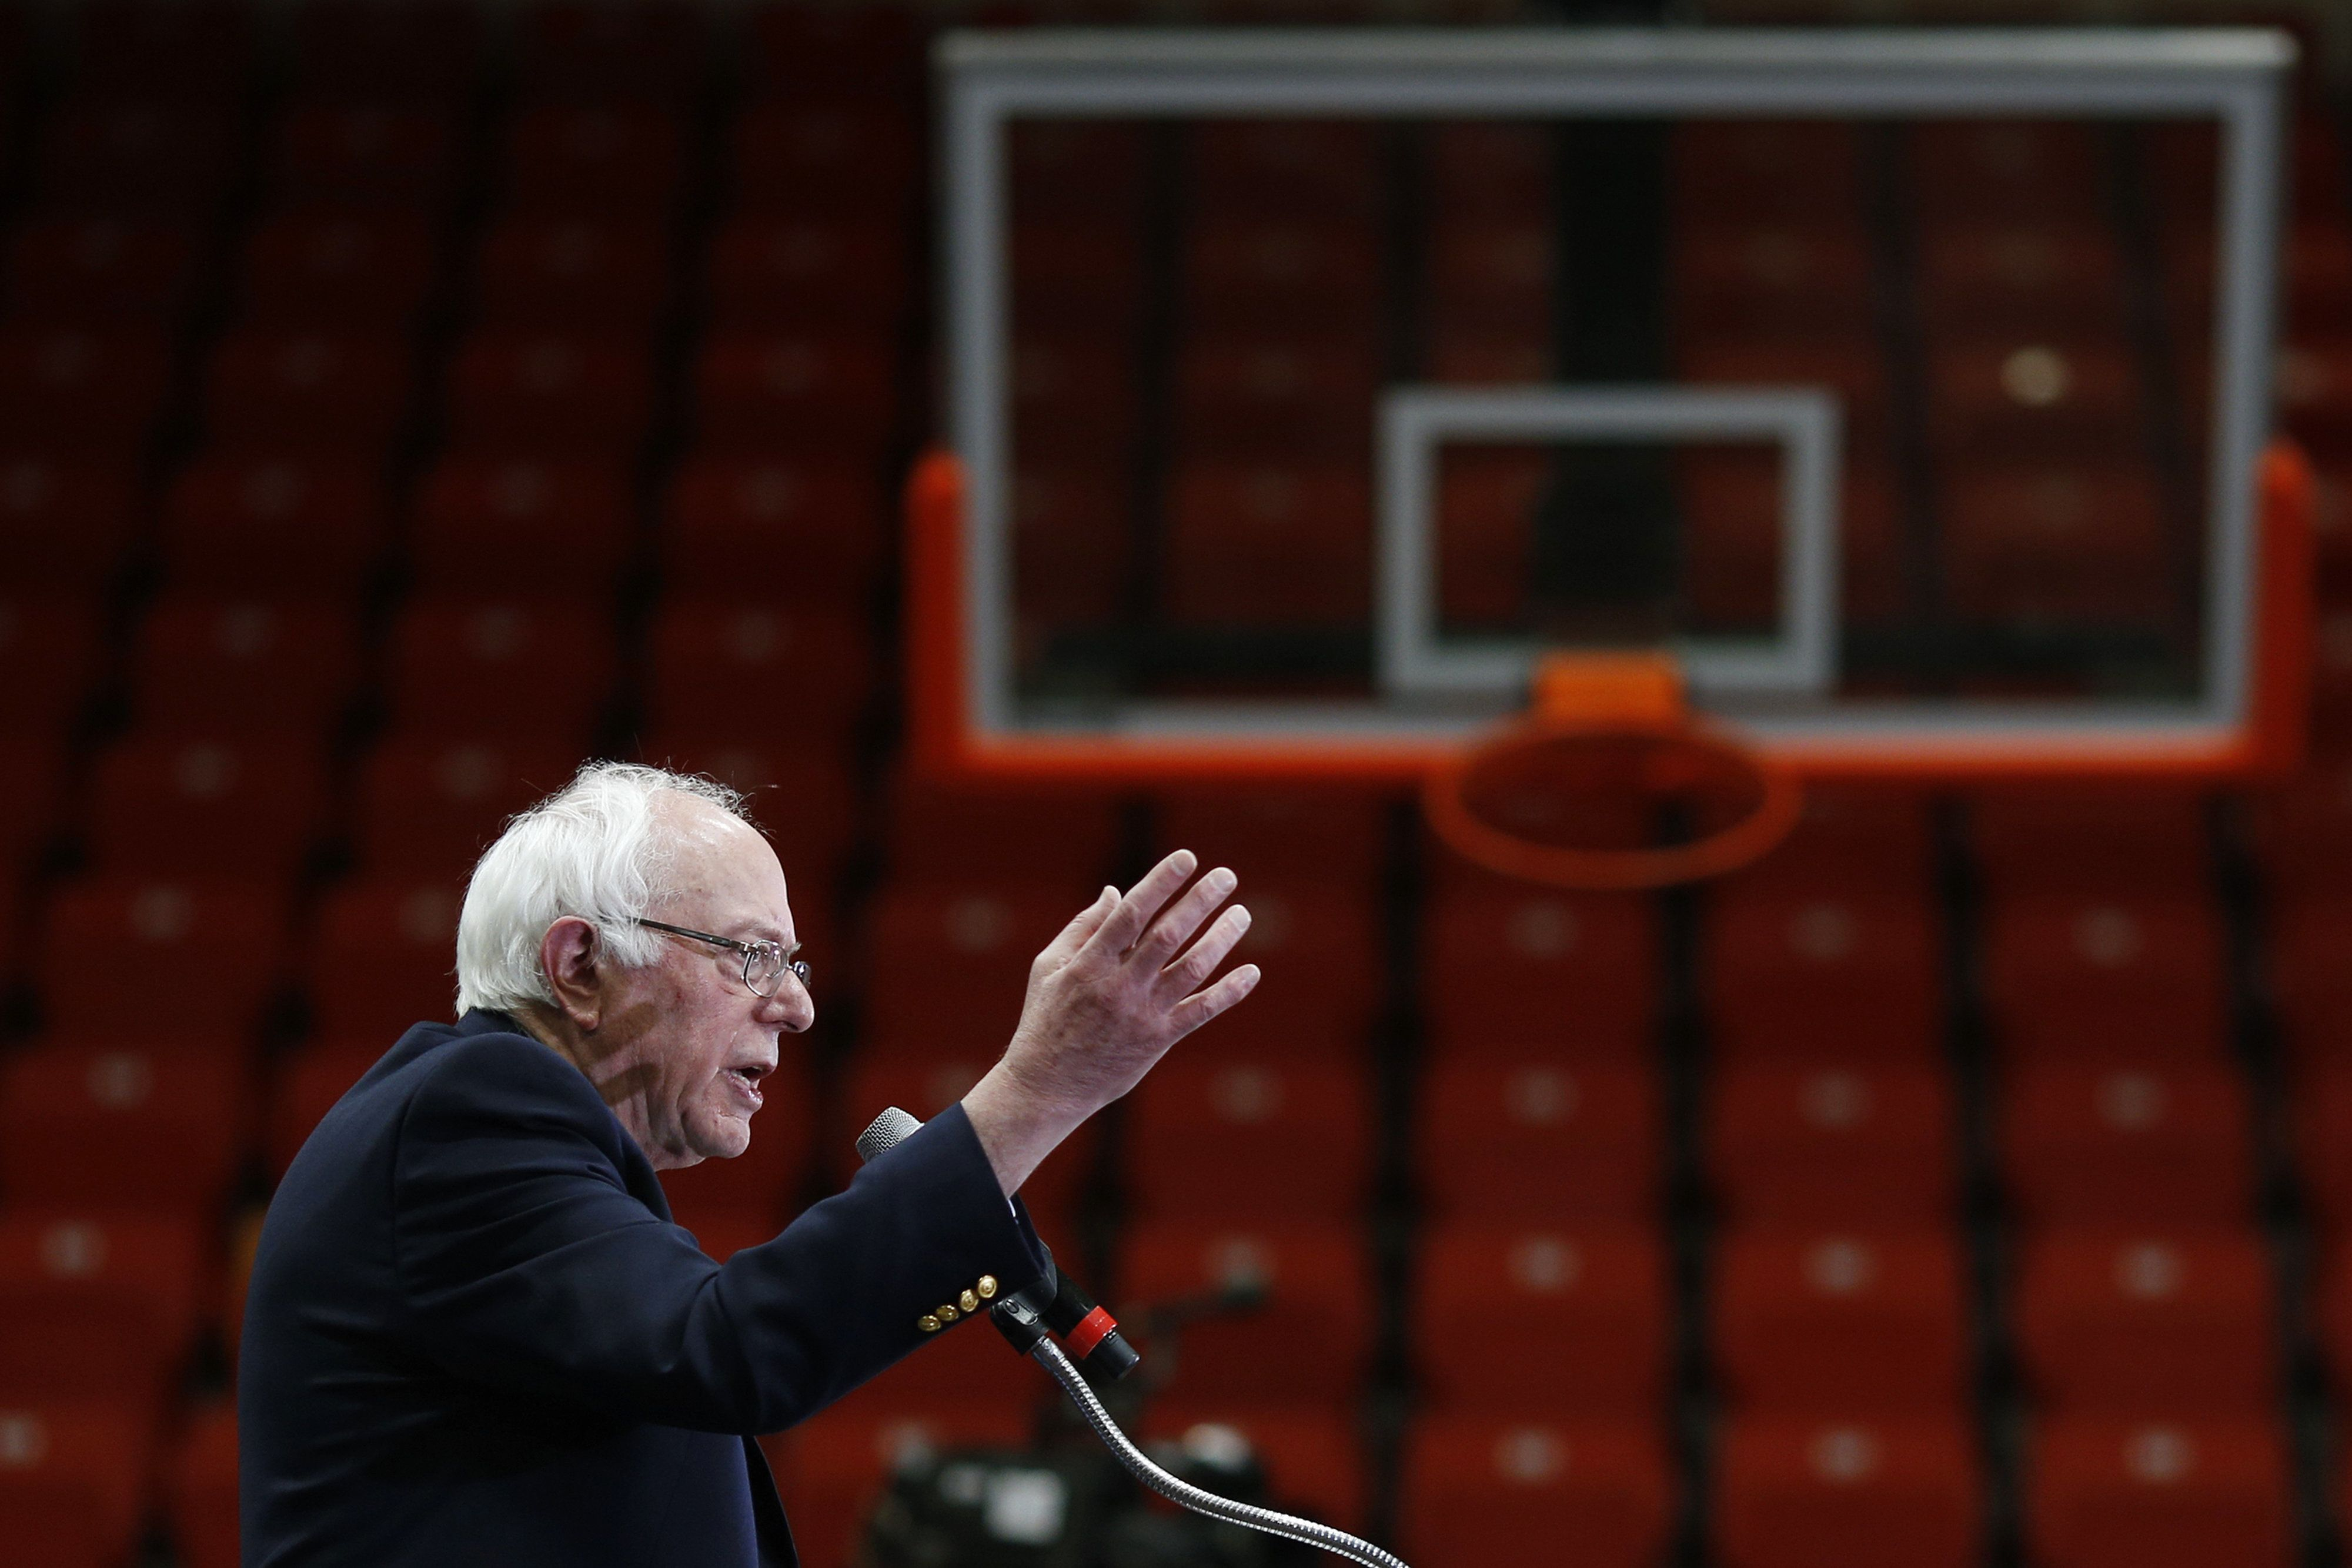 Senator Bernie Sanders, an independent from Vermont and 2016 Democratic presidential candidate, speaks during a campaign event at Claflin University in Orangeburg, South Carolina, U.S., on Friday, Feb. 26, 2016. Sanders has built a bigger operation in South Carolina than he has had in any other state thus far in the Democratic presidential primary as he tries to close in on front-runner Hillary Clinton in the last contest ahead of Super Tuesday. Photographer: Luke Sharrett/Bloomberg via Getty Images